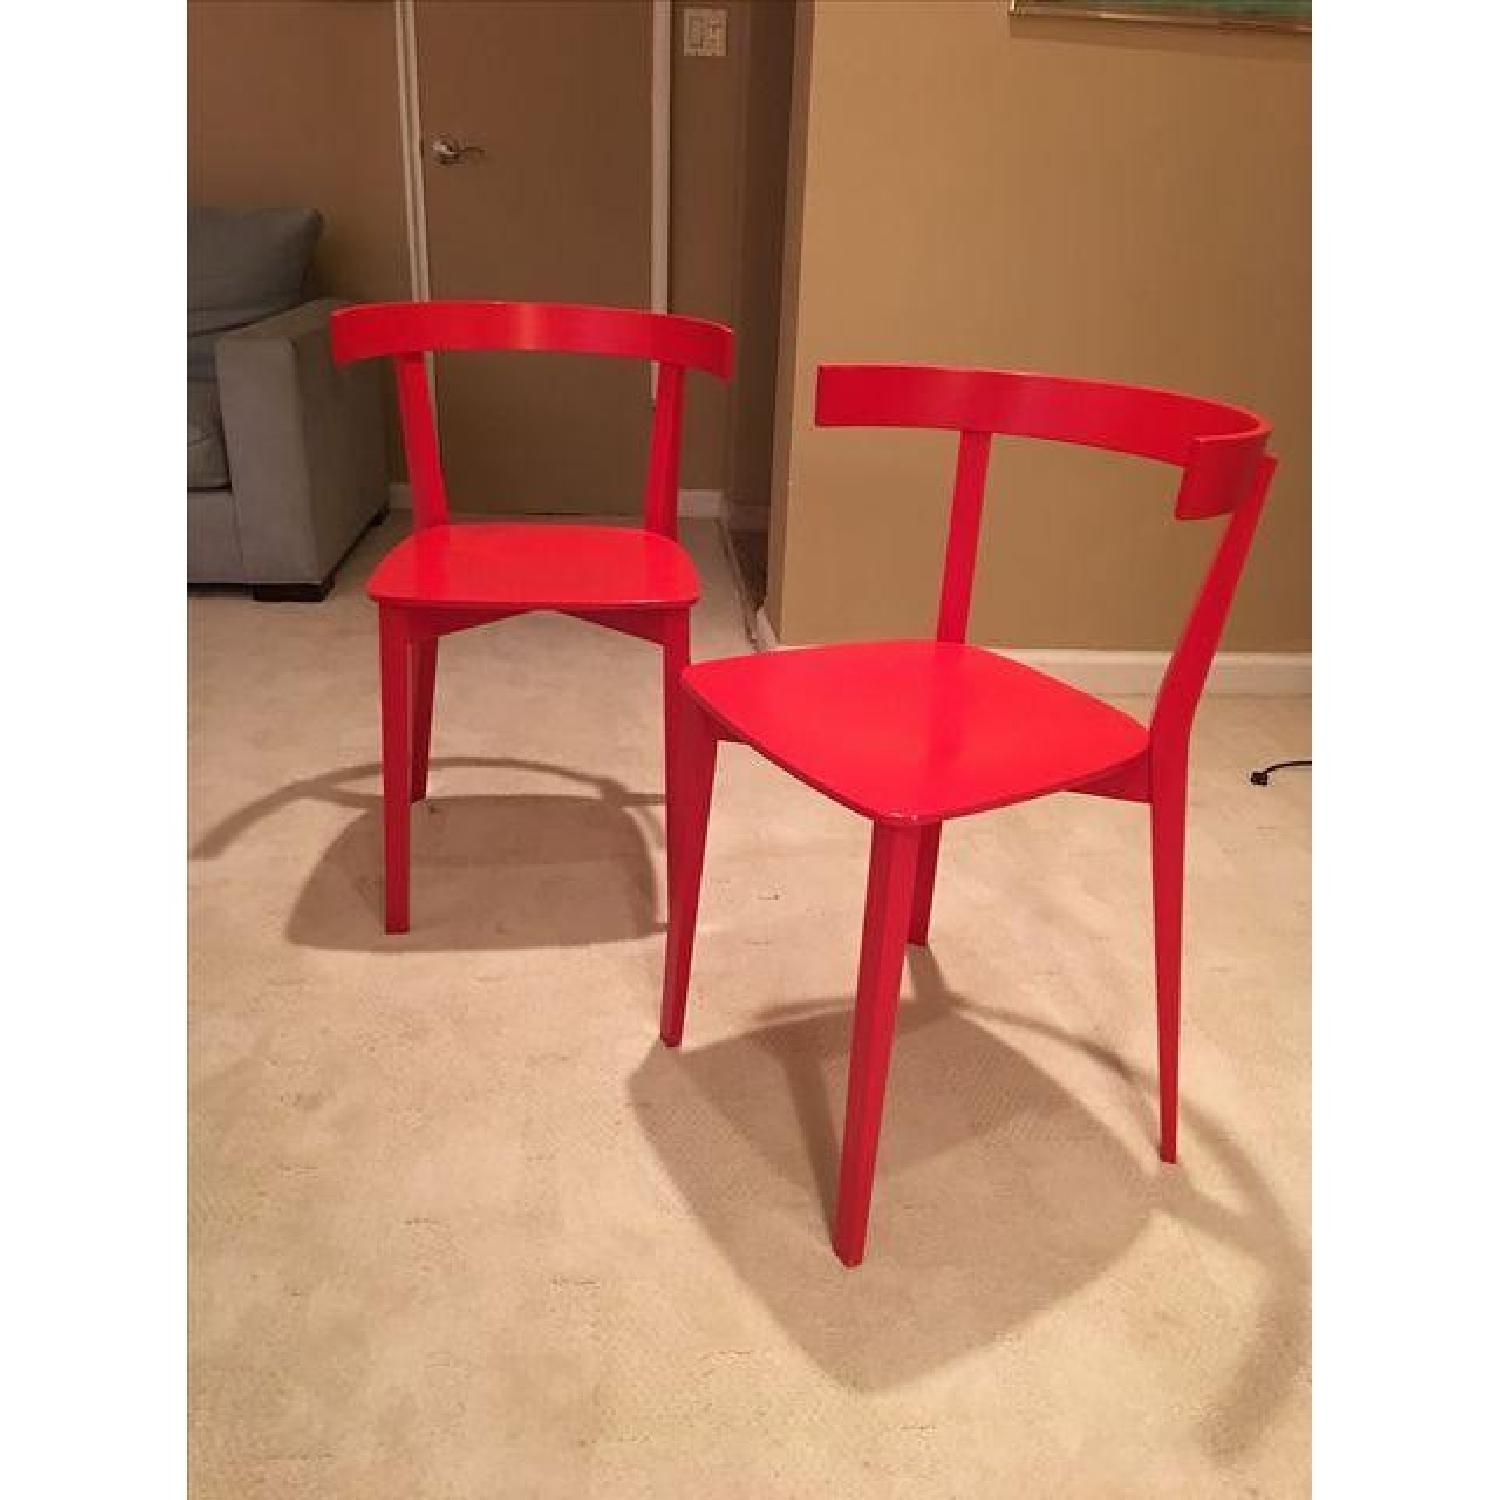 High Gloss Red Lacquer Chairs - image-1